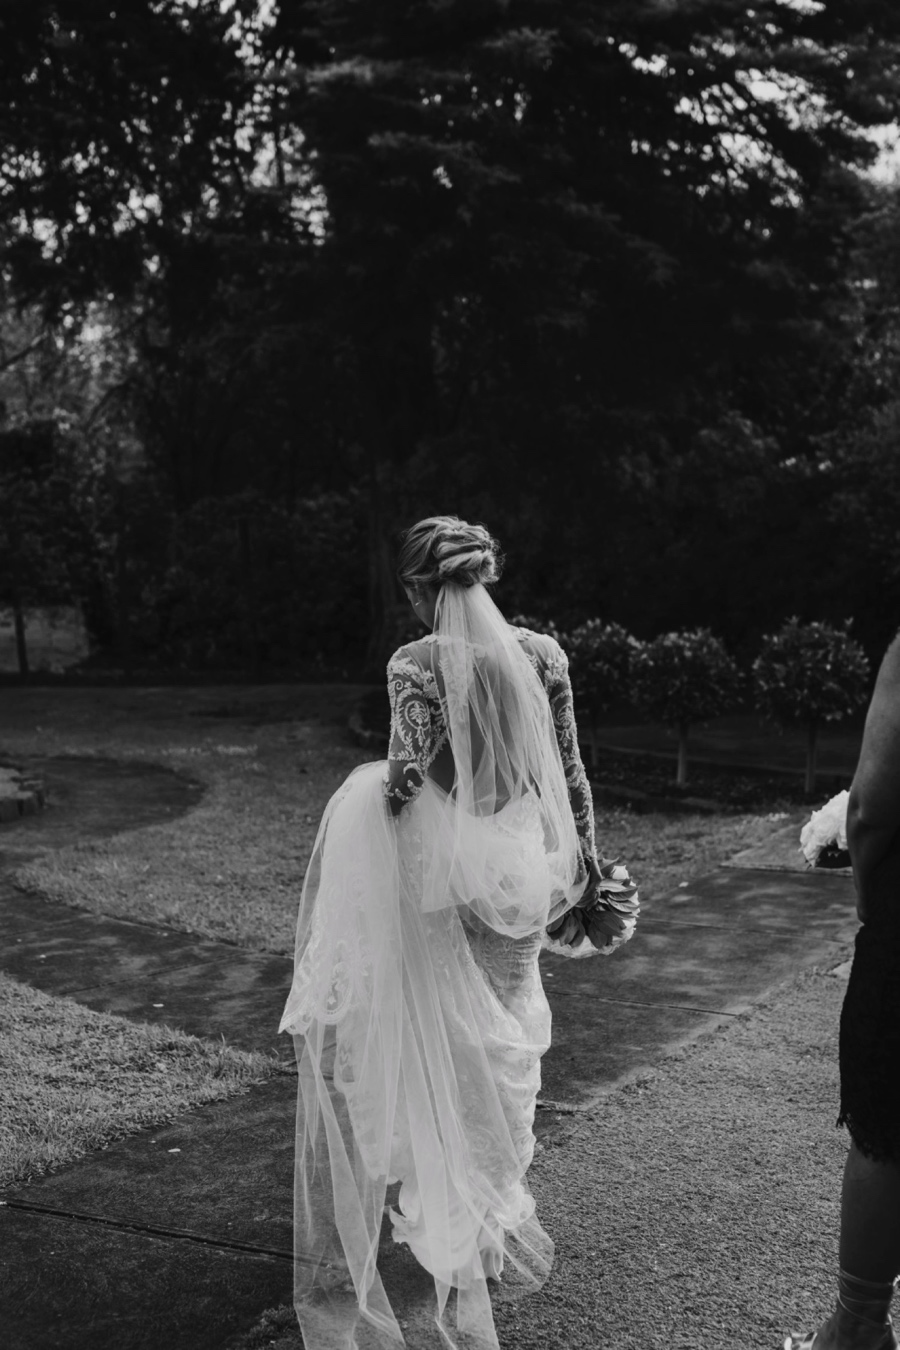 098_Melbourne Wedding Photographer Ashleigh Haase98.jpg